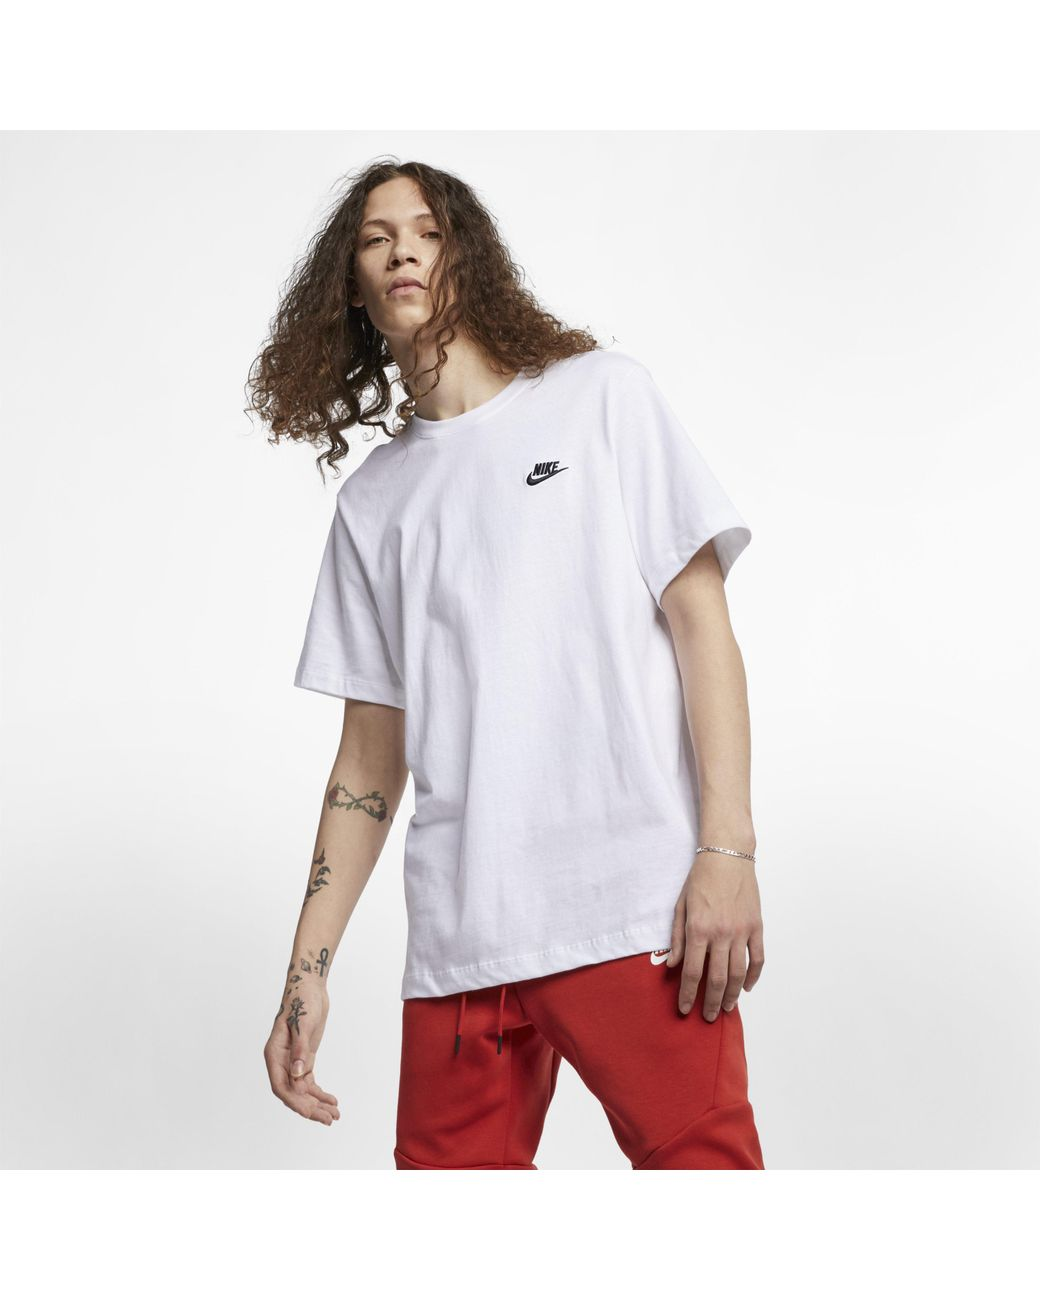 0a628484b Nike Crew Neck Club T Shirt White in White for Men - Save 6% - Lyst